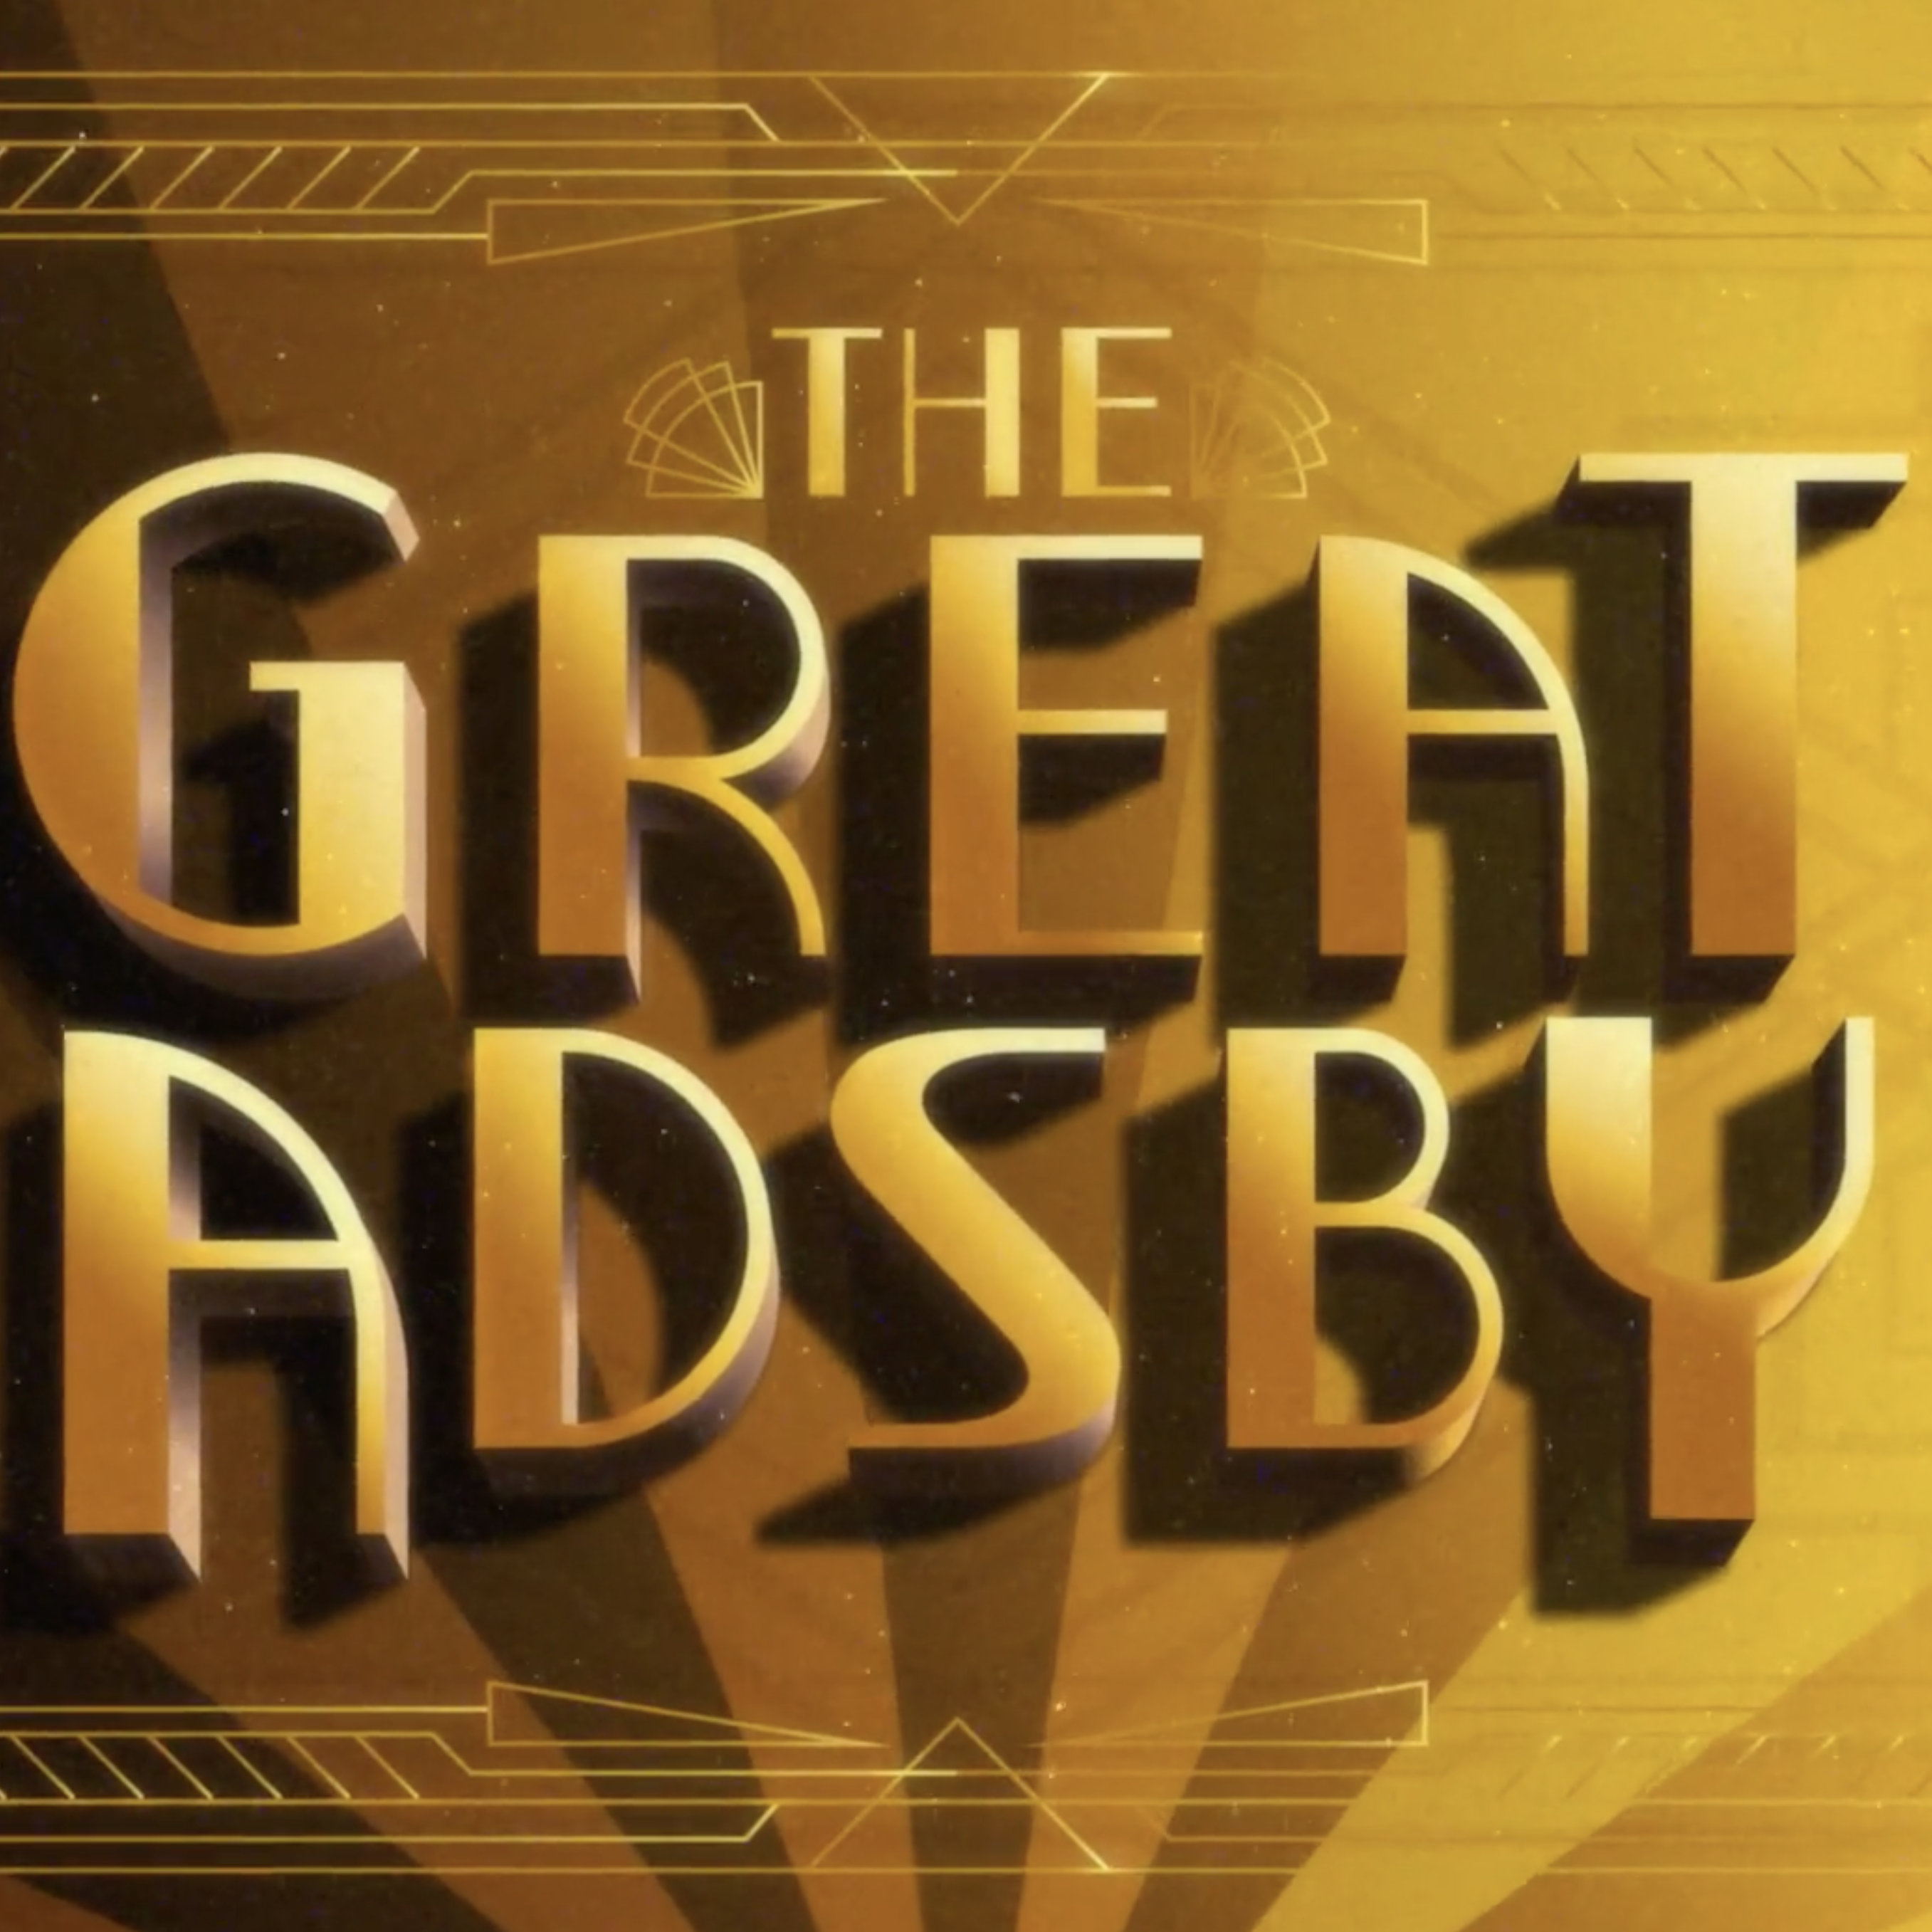 The Great Adsby – Curtains (Square)